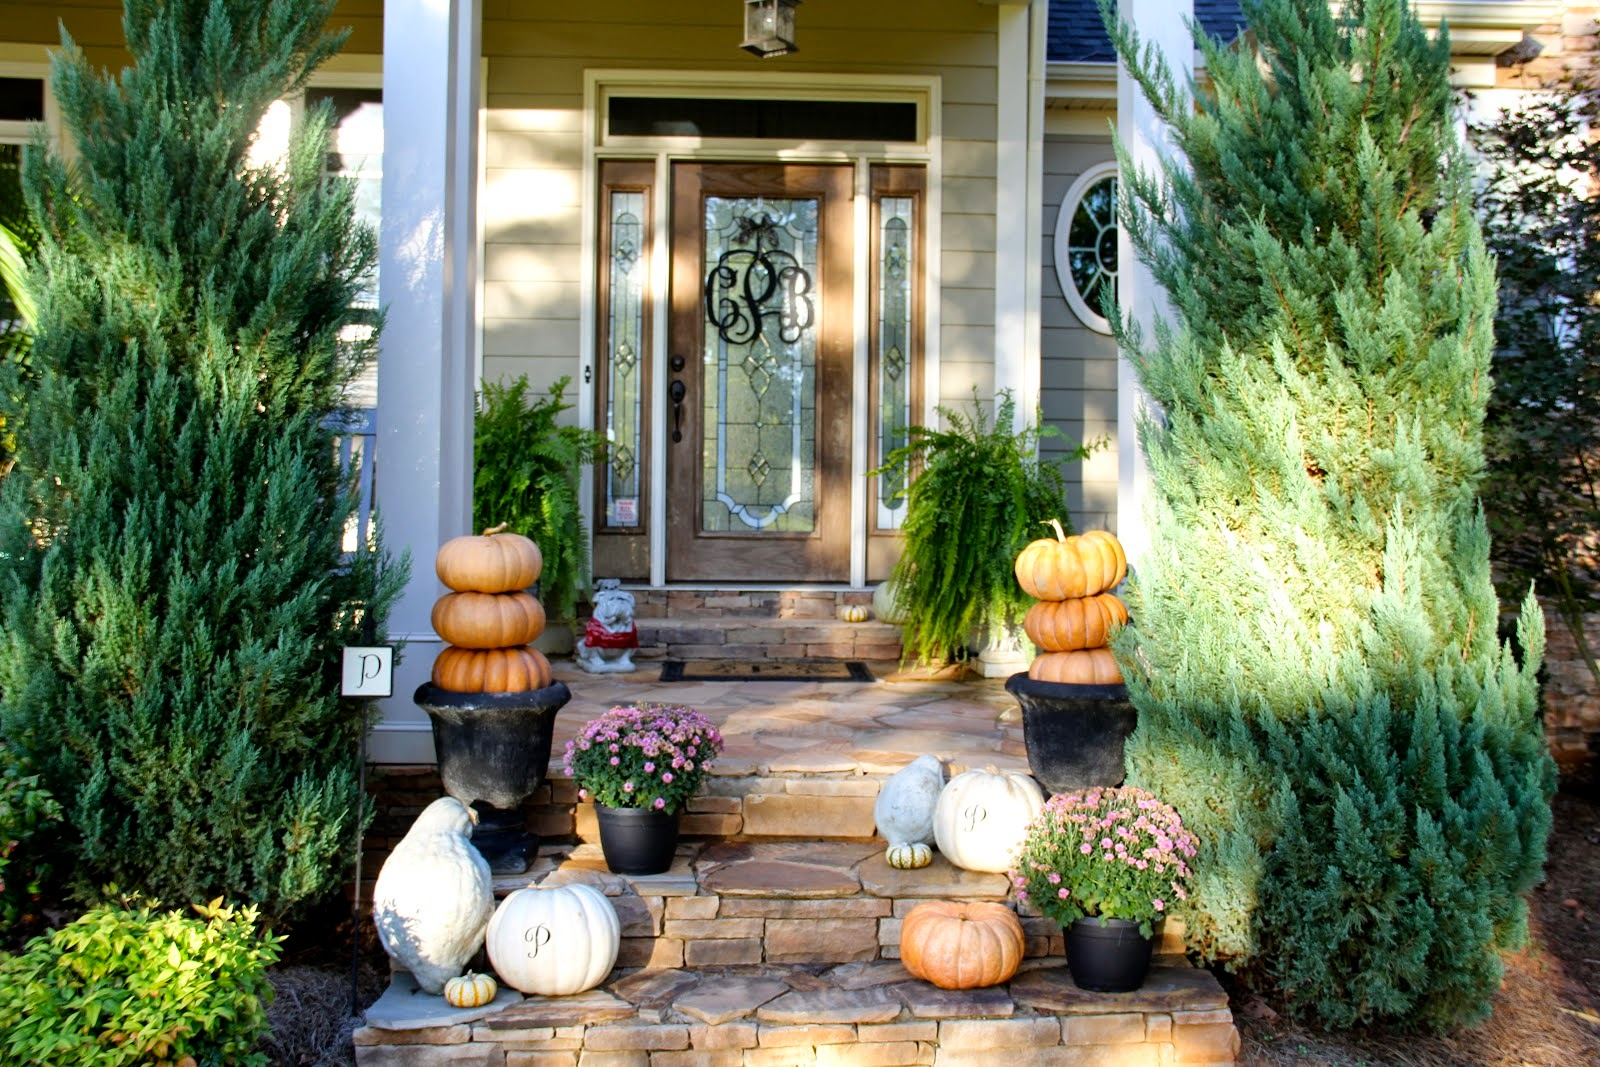 7 front porch decorating ideas pictures for your home Small front porch decorating ideas for fall